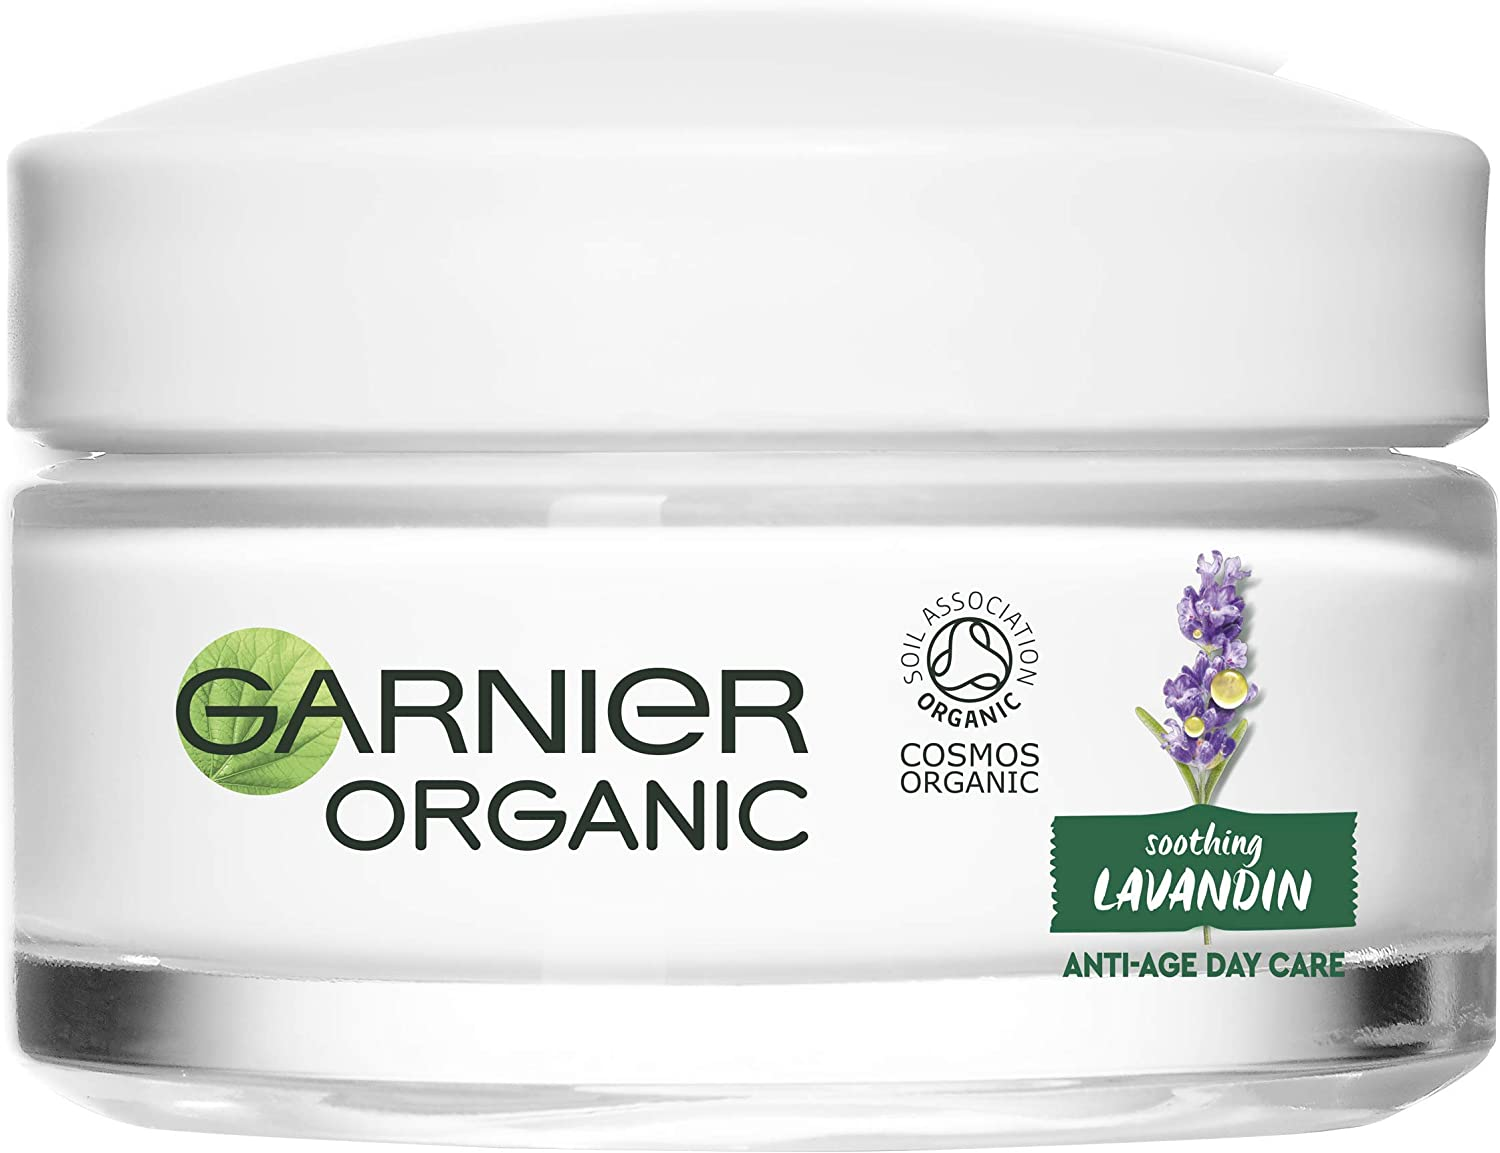 Hand cream with organic pure essential oil of lavender and lavandin